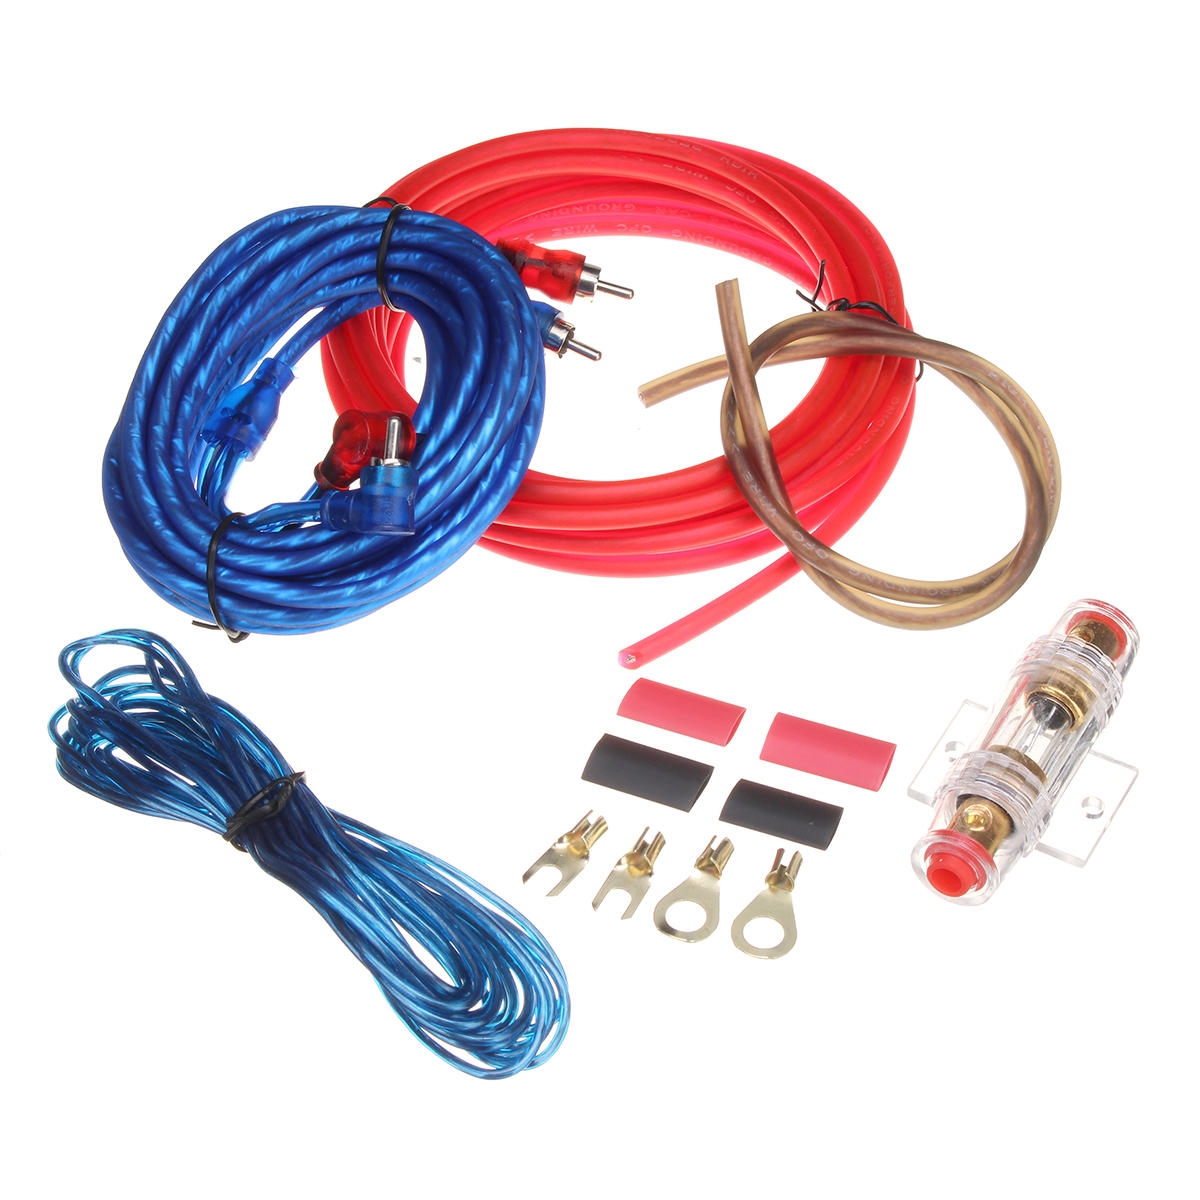 hight resolution of car audio subwoofer sub amplifier amp rca wiring kit power audio cable 10ga 4 5m cod